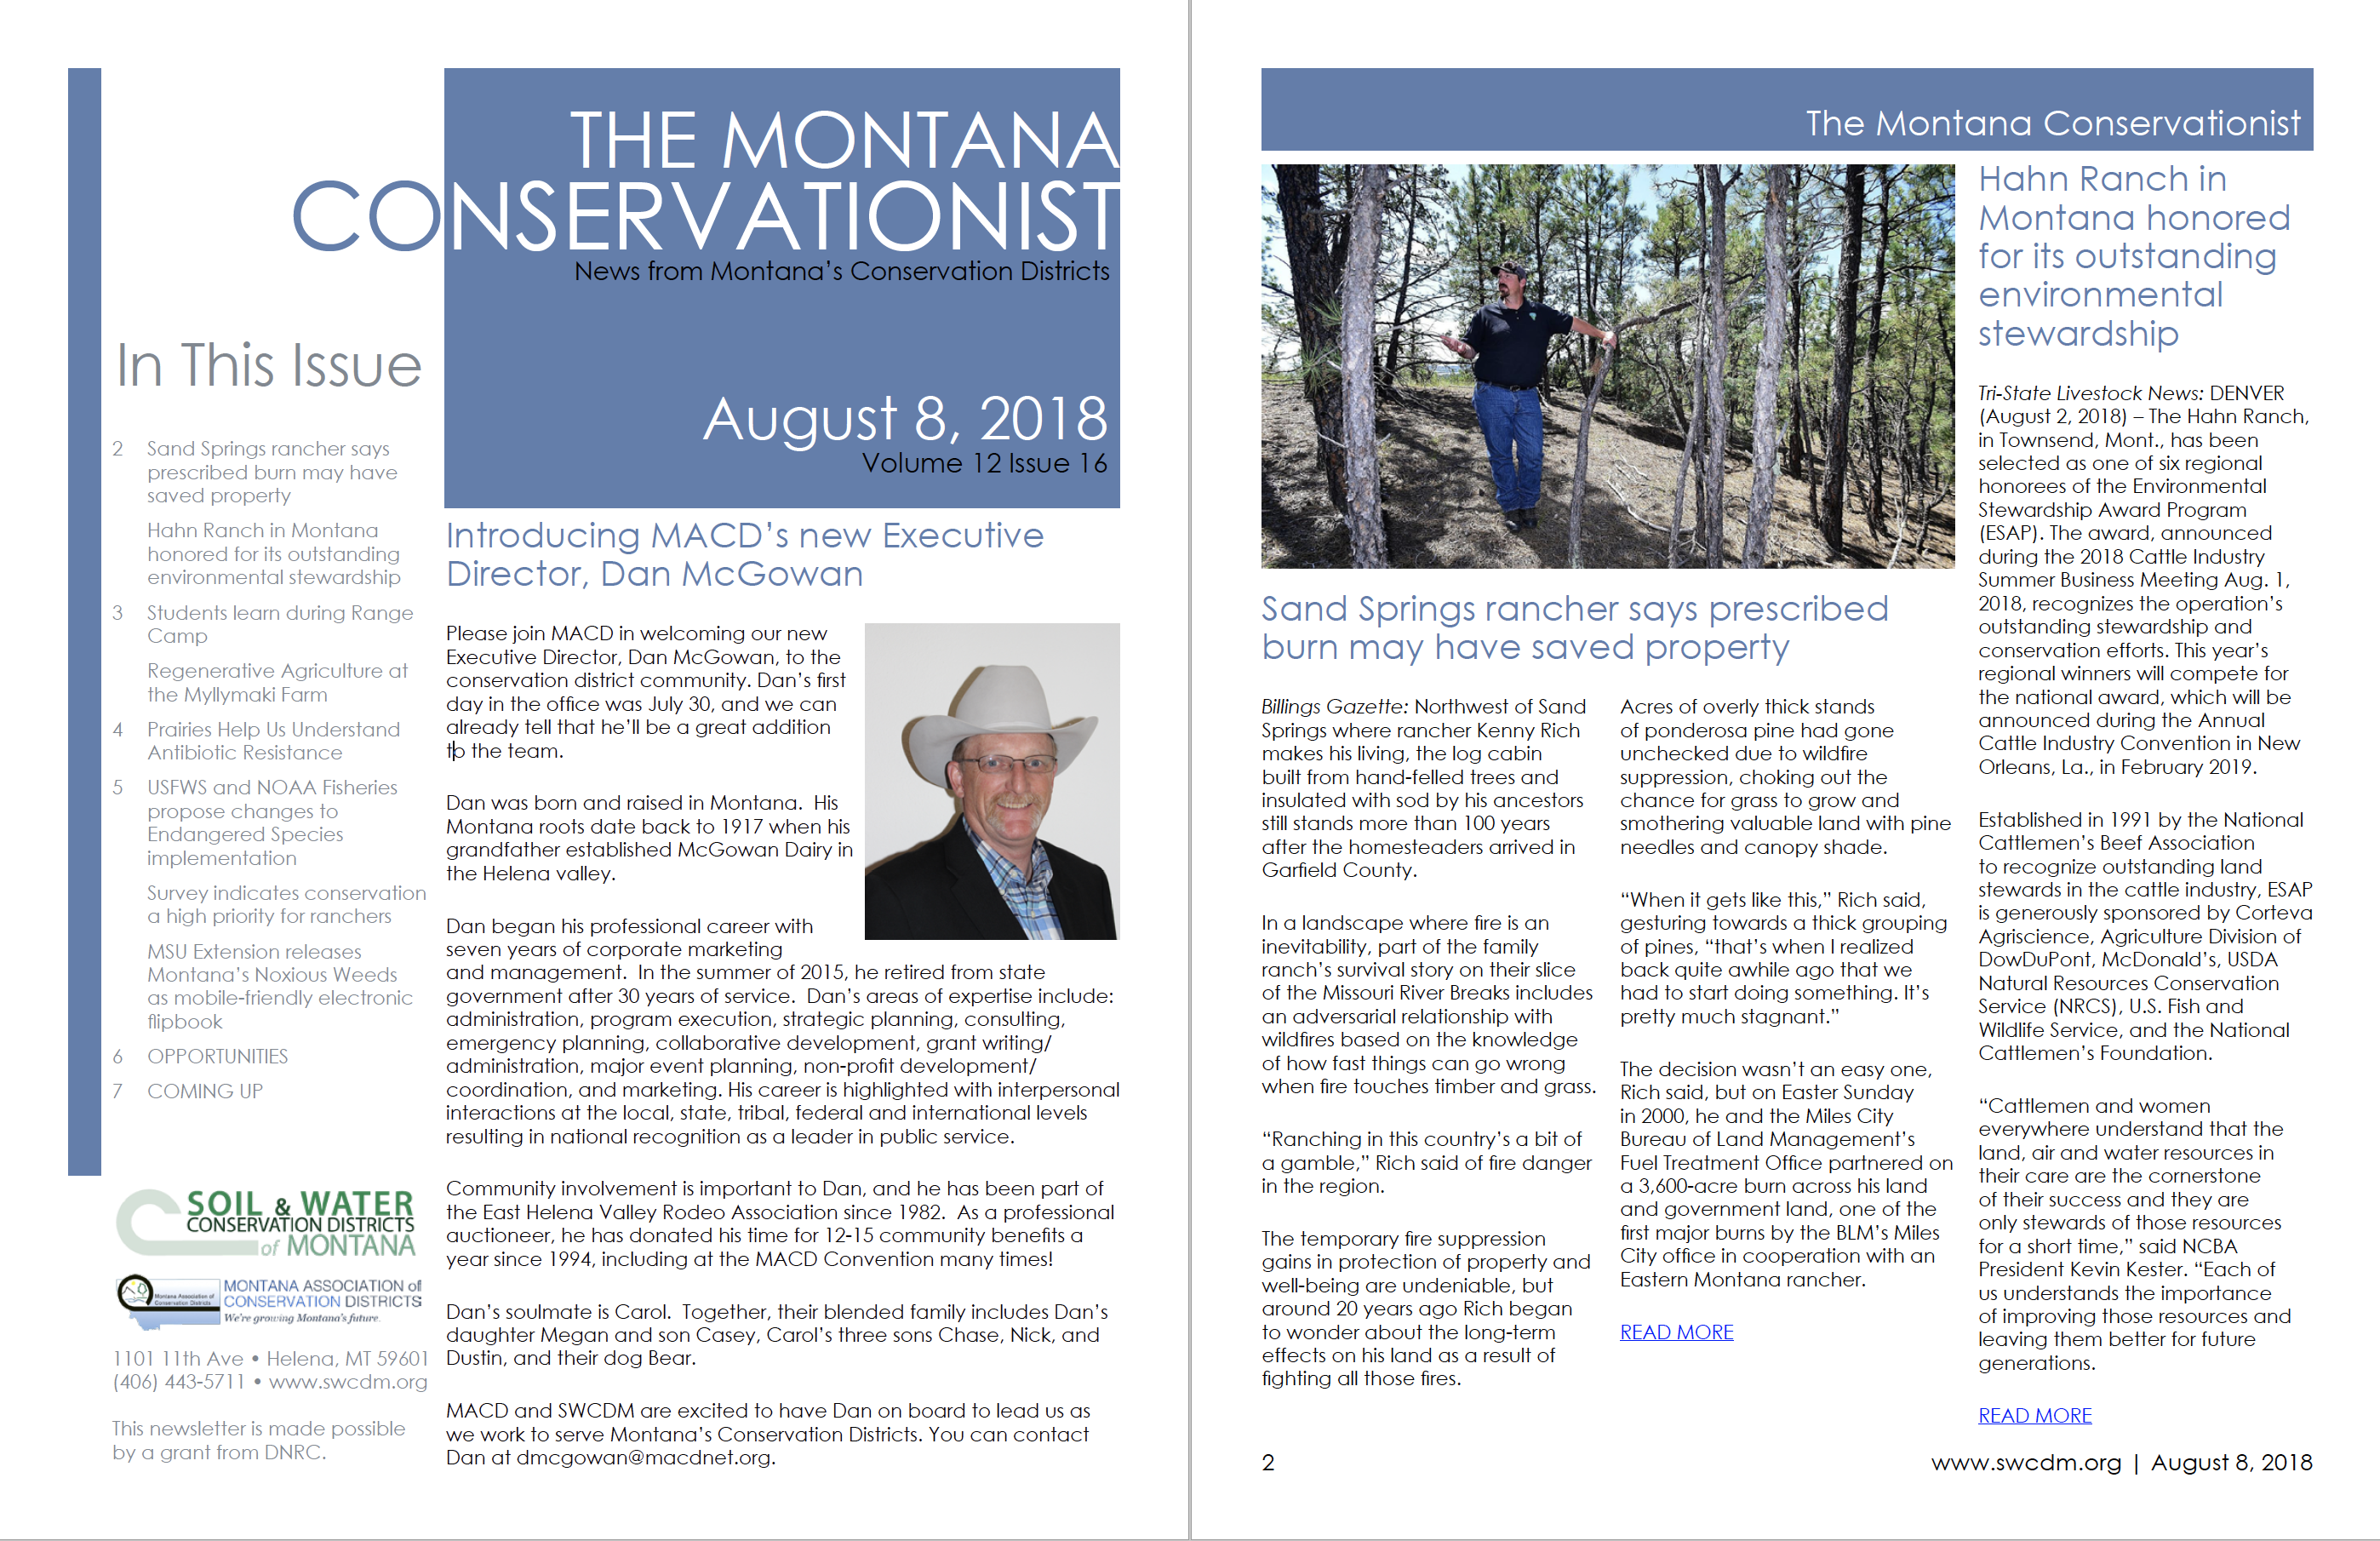 The Montana Conservationist, August 8